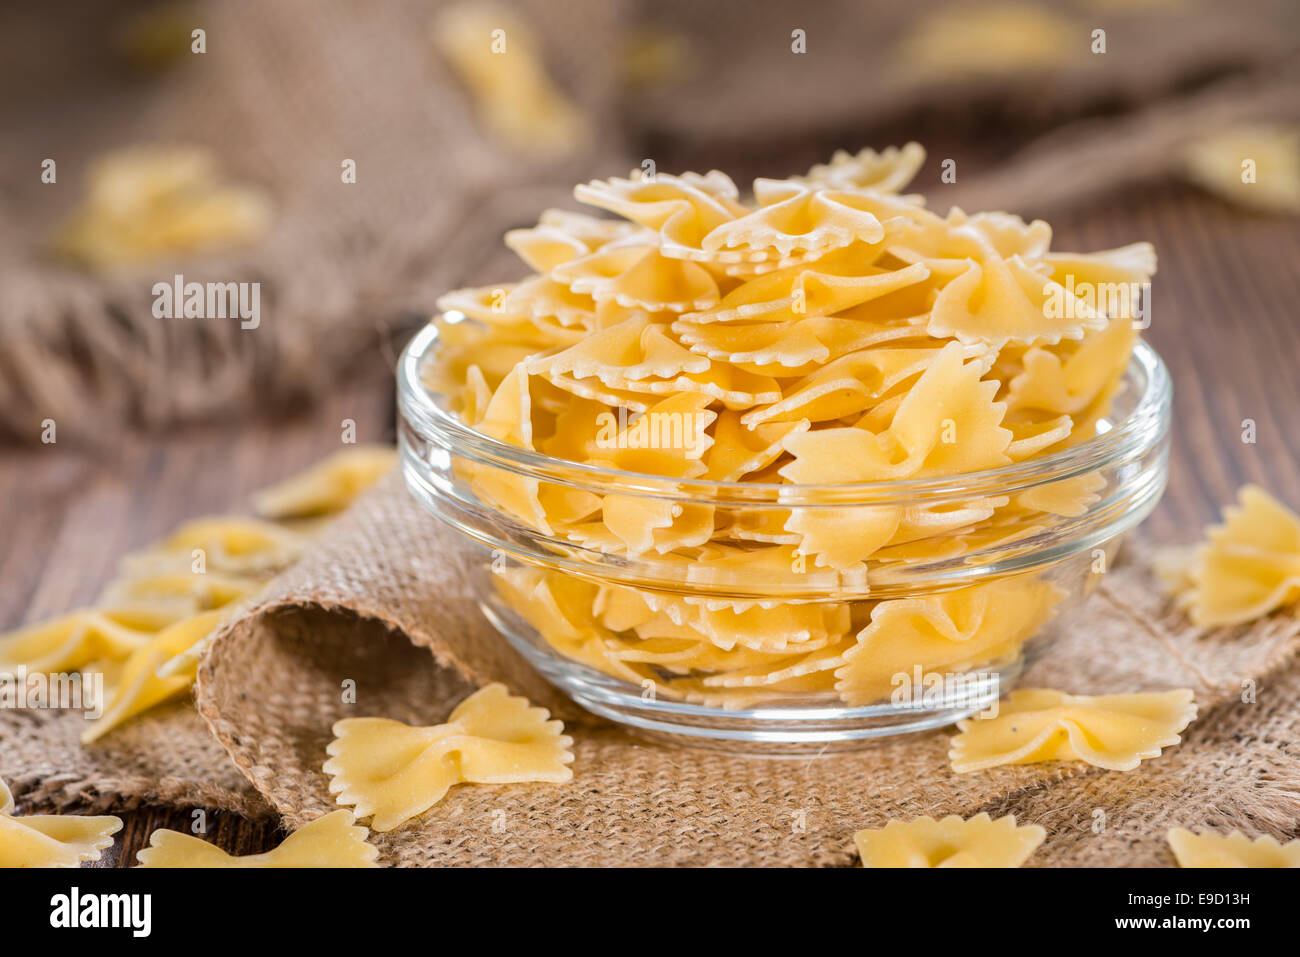 Farfalle (commonly known as Bow-Tie Pasta) in a bowl on wooden background - Stock Image